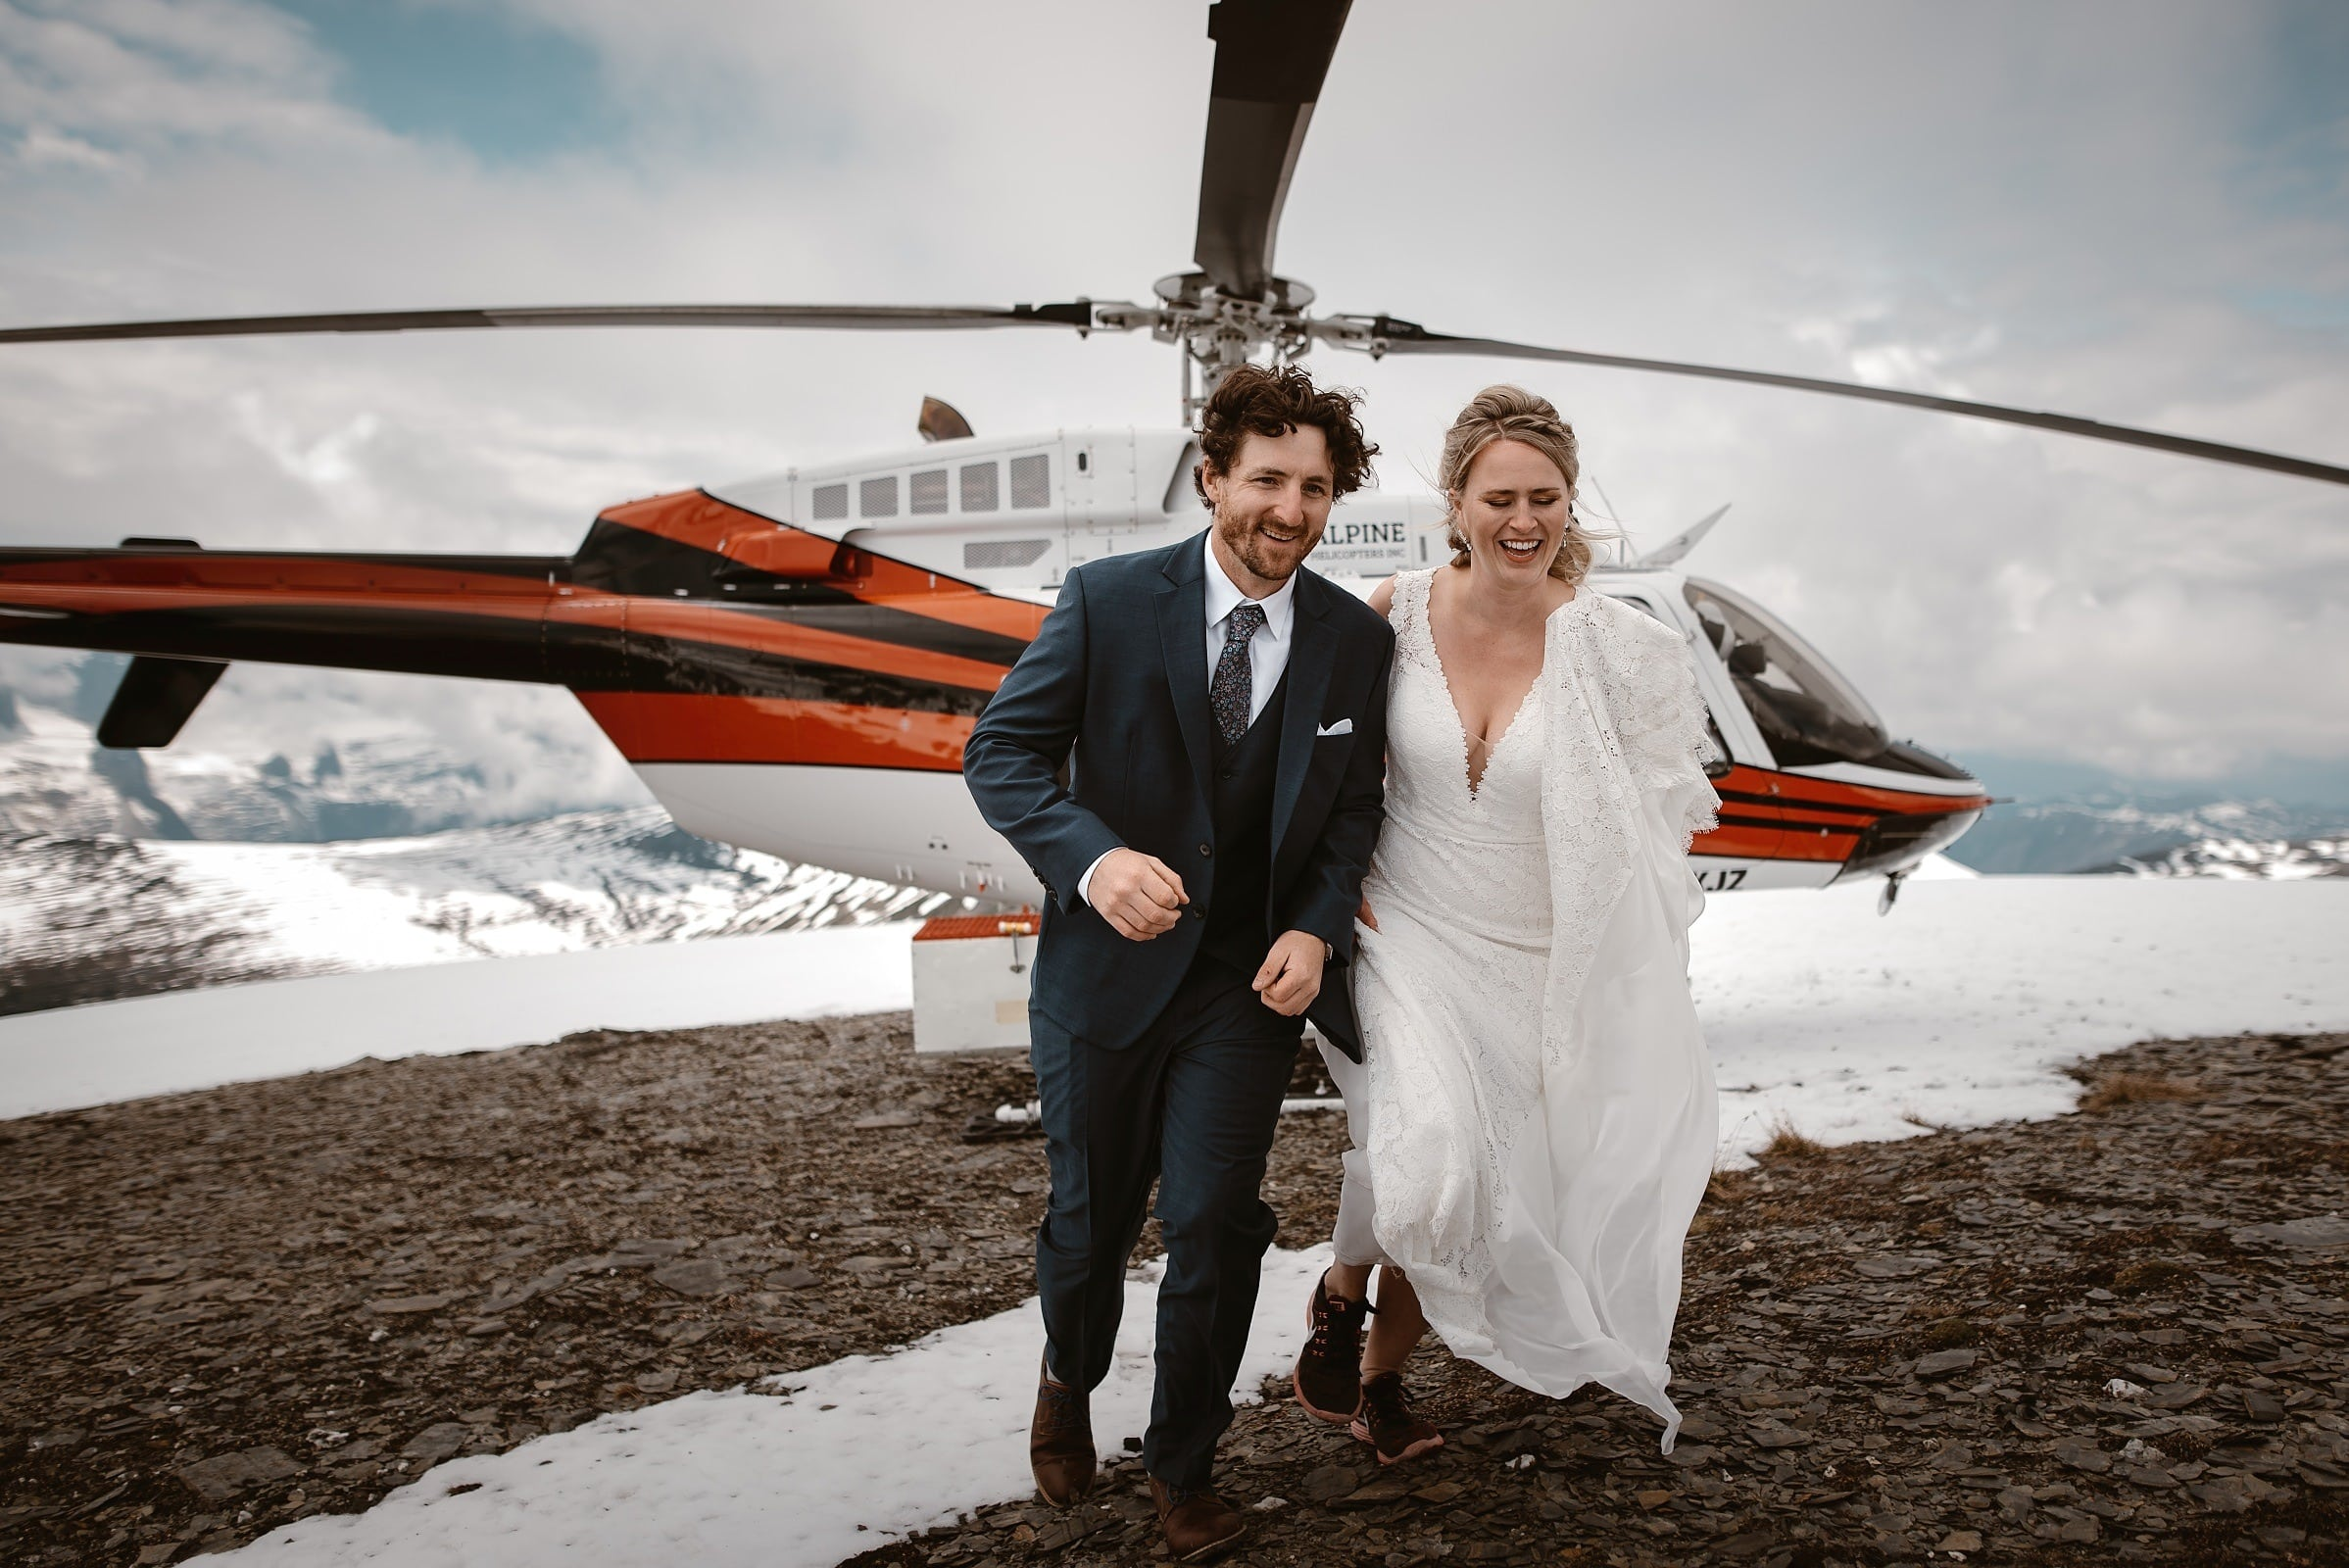 An eloping couple are laughing, and running away from the helicopter that flew them to the top of a mountain in Banff National Park. Their adventurous elopement photos were captured by Virginia and Evan.